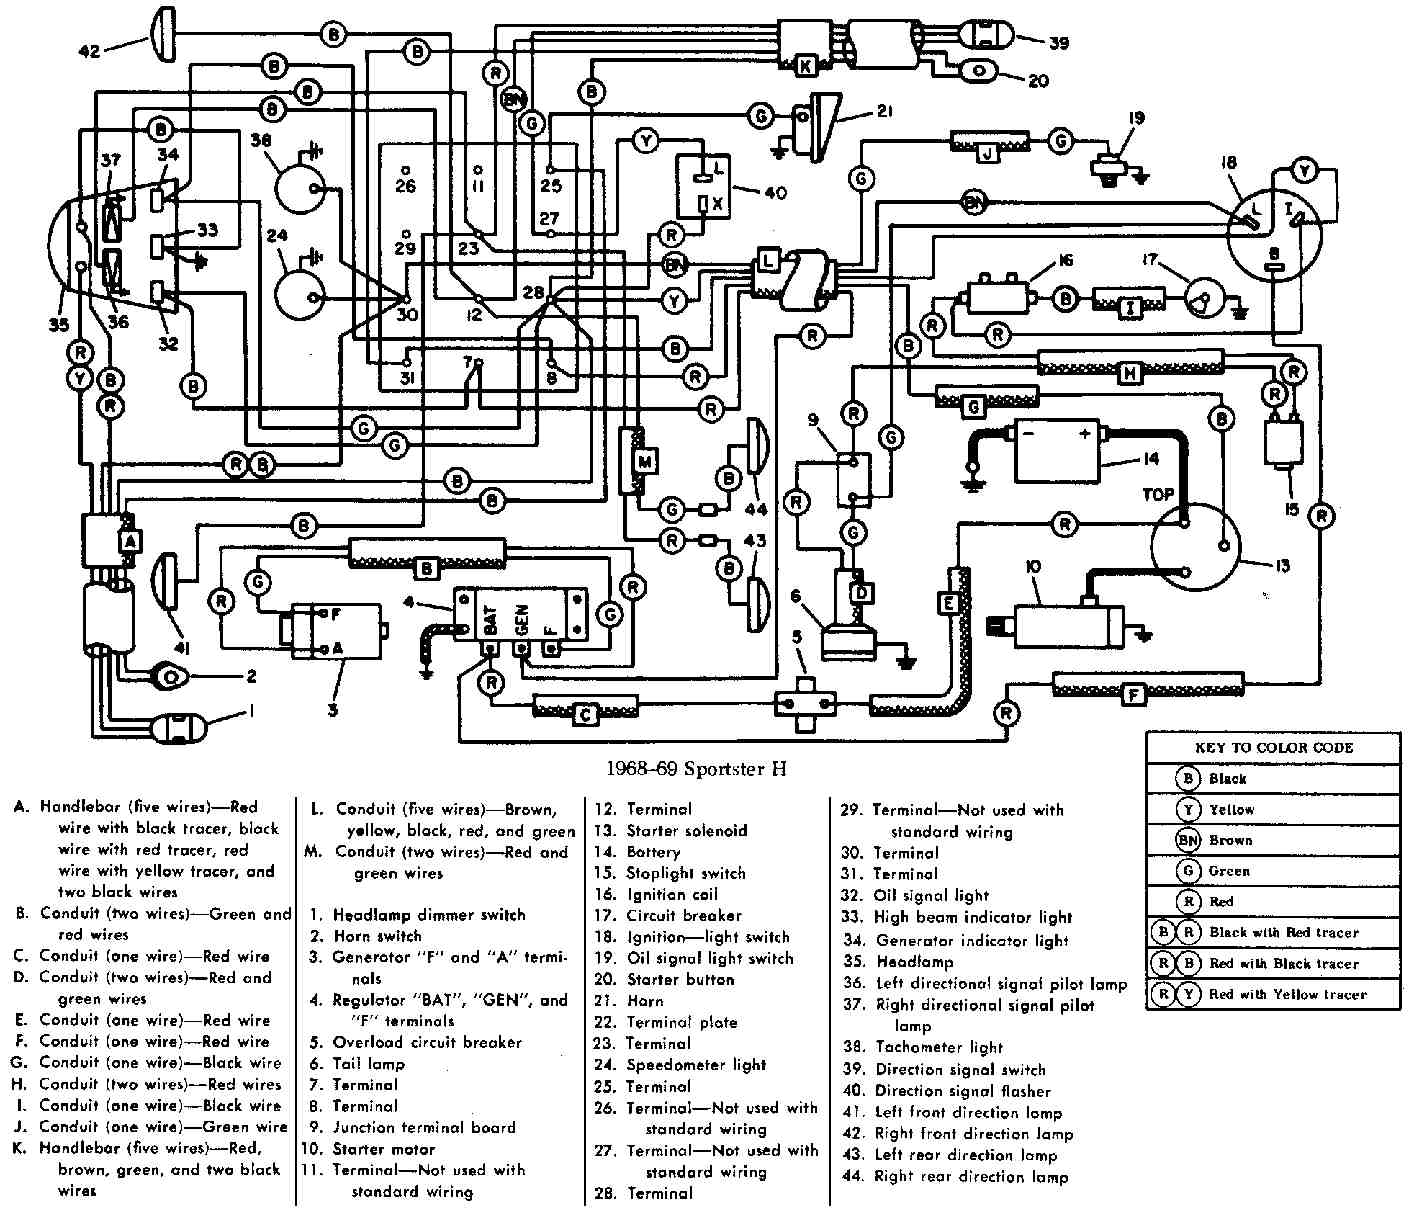 Harley+Davidson+Sportster+1968 1969+Electrical+Wiring+Diagram 1968 mustang wiring diagrams with tach, please help ford mustang 1968 ford mustang wiring diagram at n-0.co